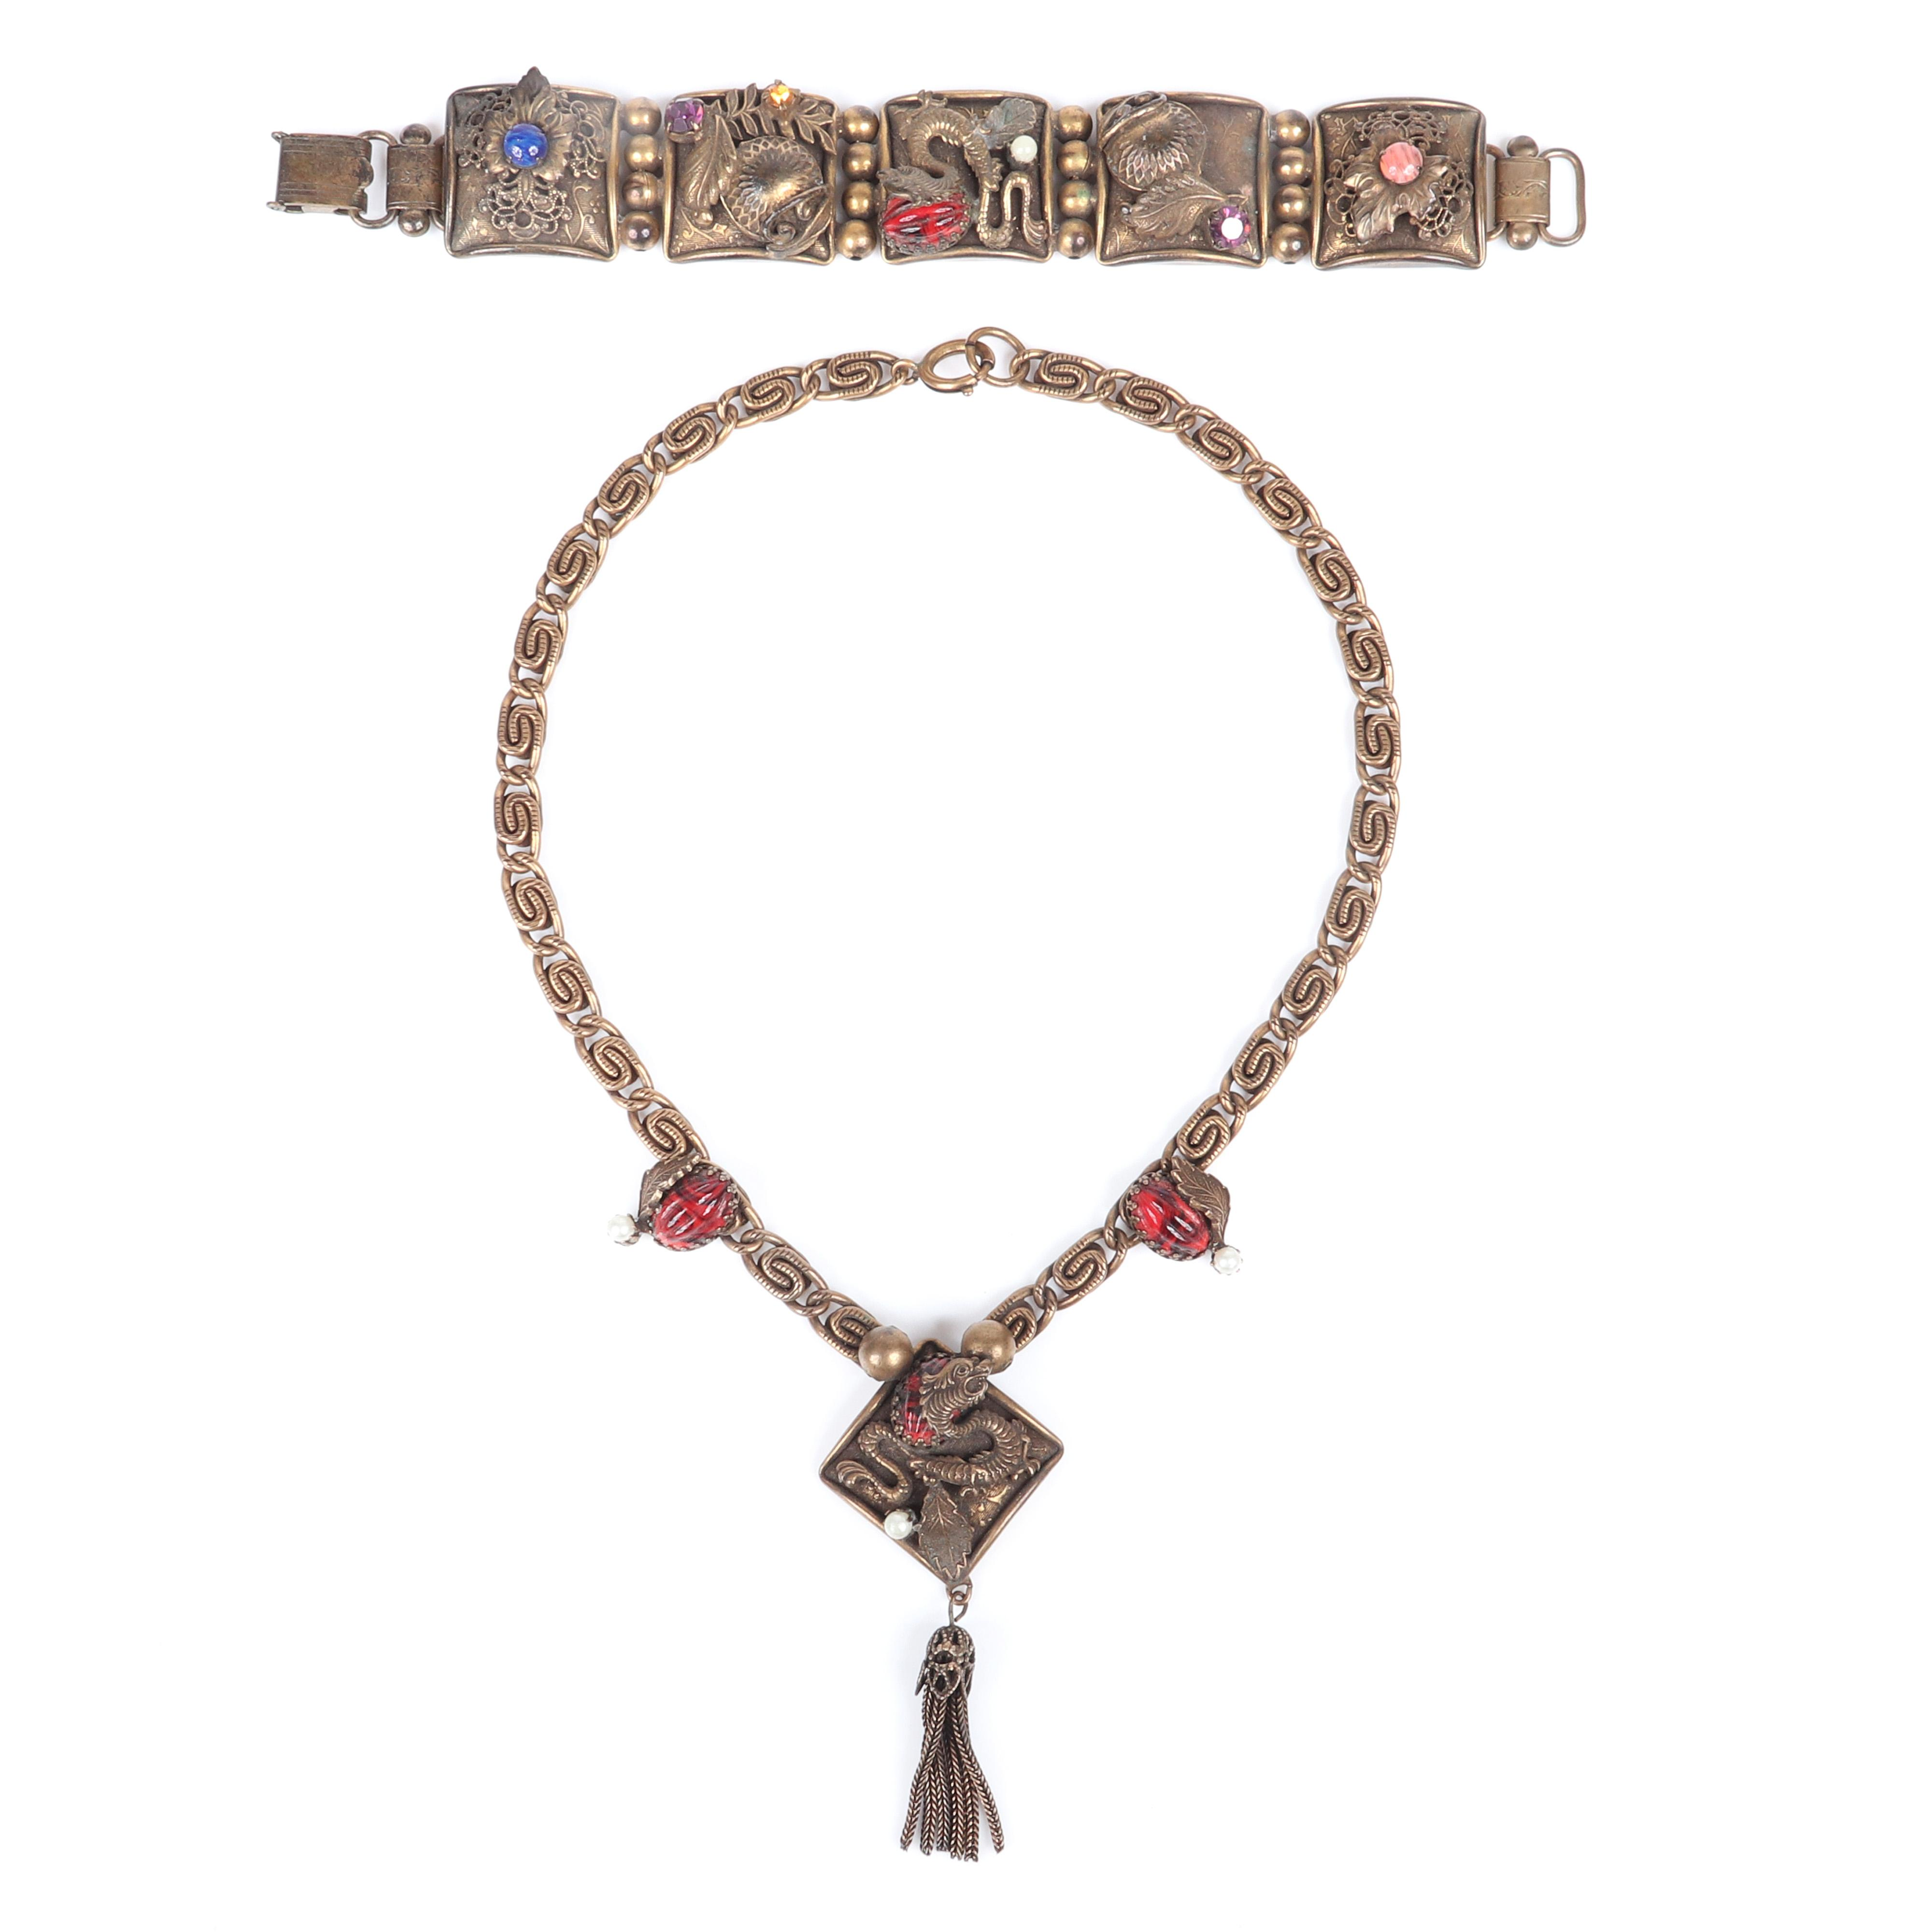 "Czech Art Deco Egyptian Revival panel link repousse bracelet and necklace and fringed pendant set with snake design, faux pearls, rhinestones and peking melon shaped glass. 17""L"